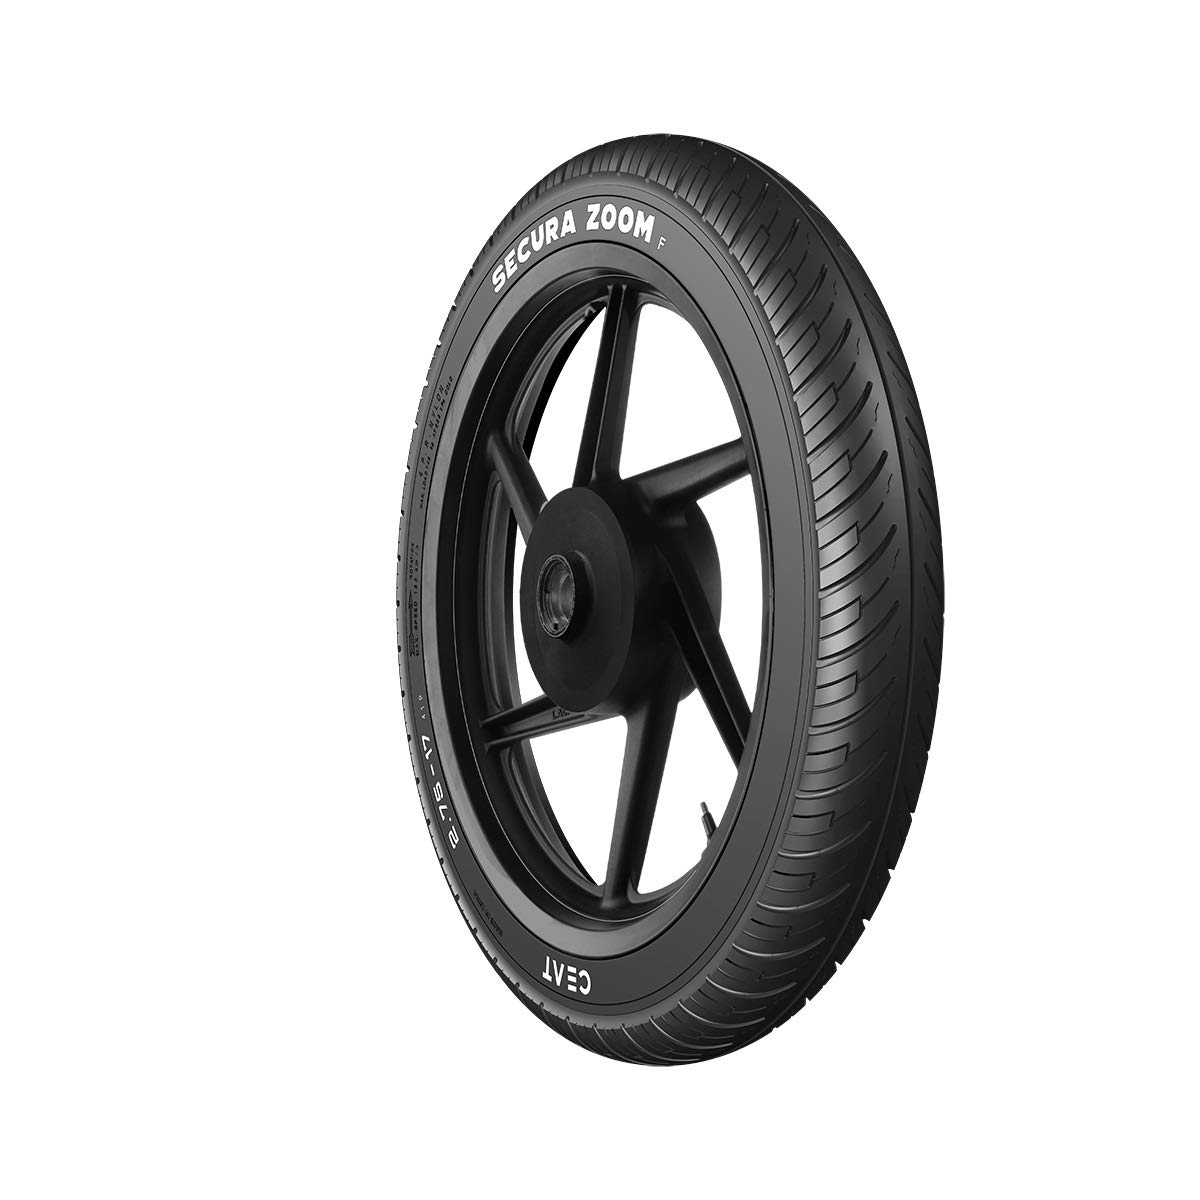 Ceat Secura Zoom F  90/90 -17  49P Tubeless Bike Tyre, Front (Home Delivery) product image